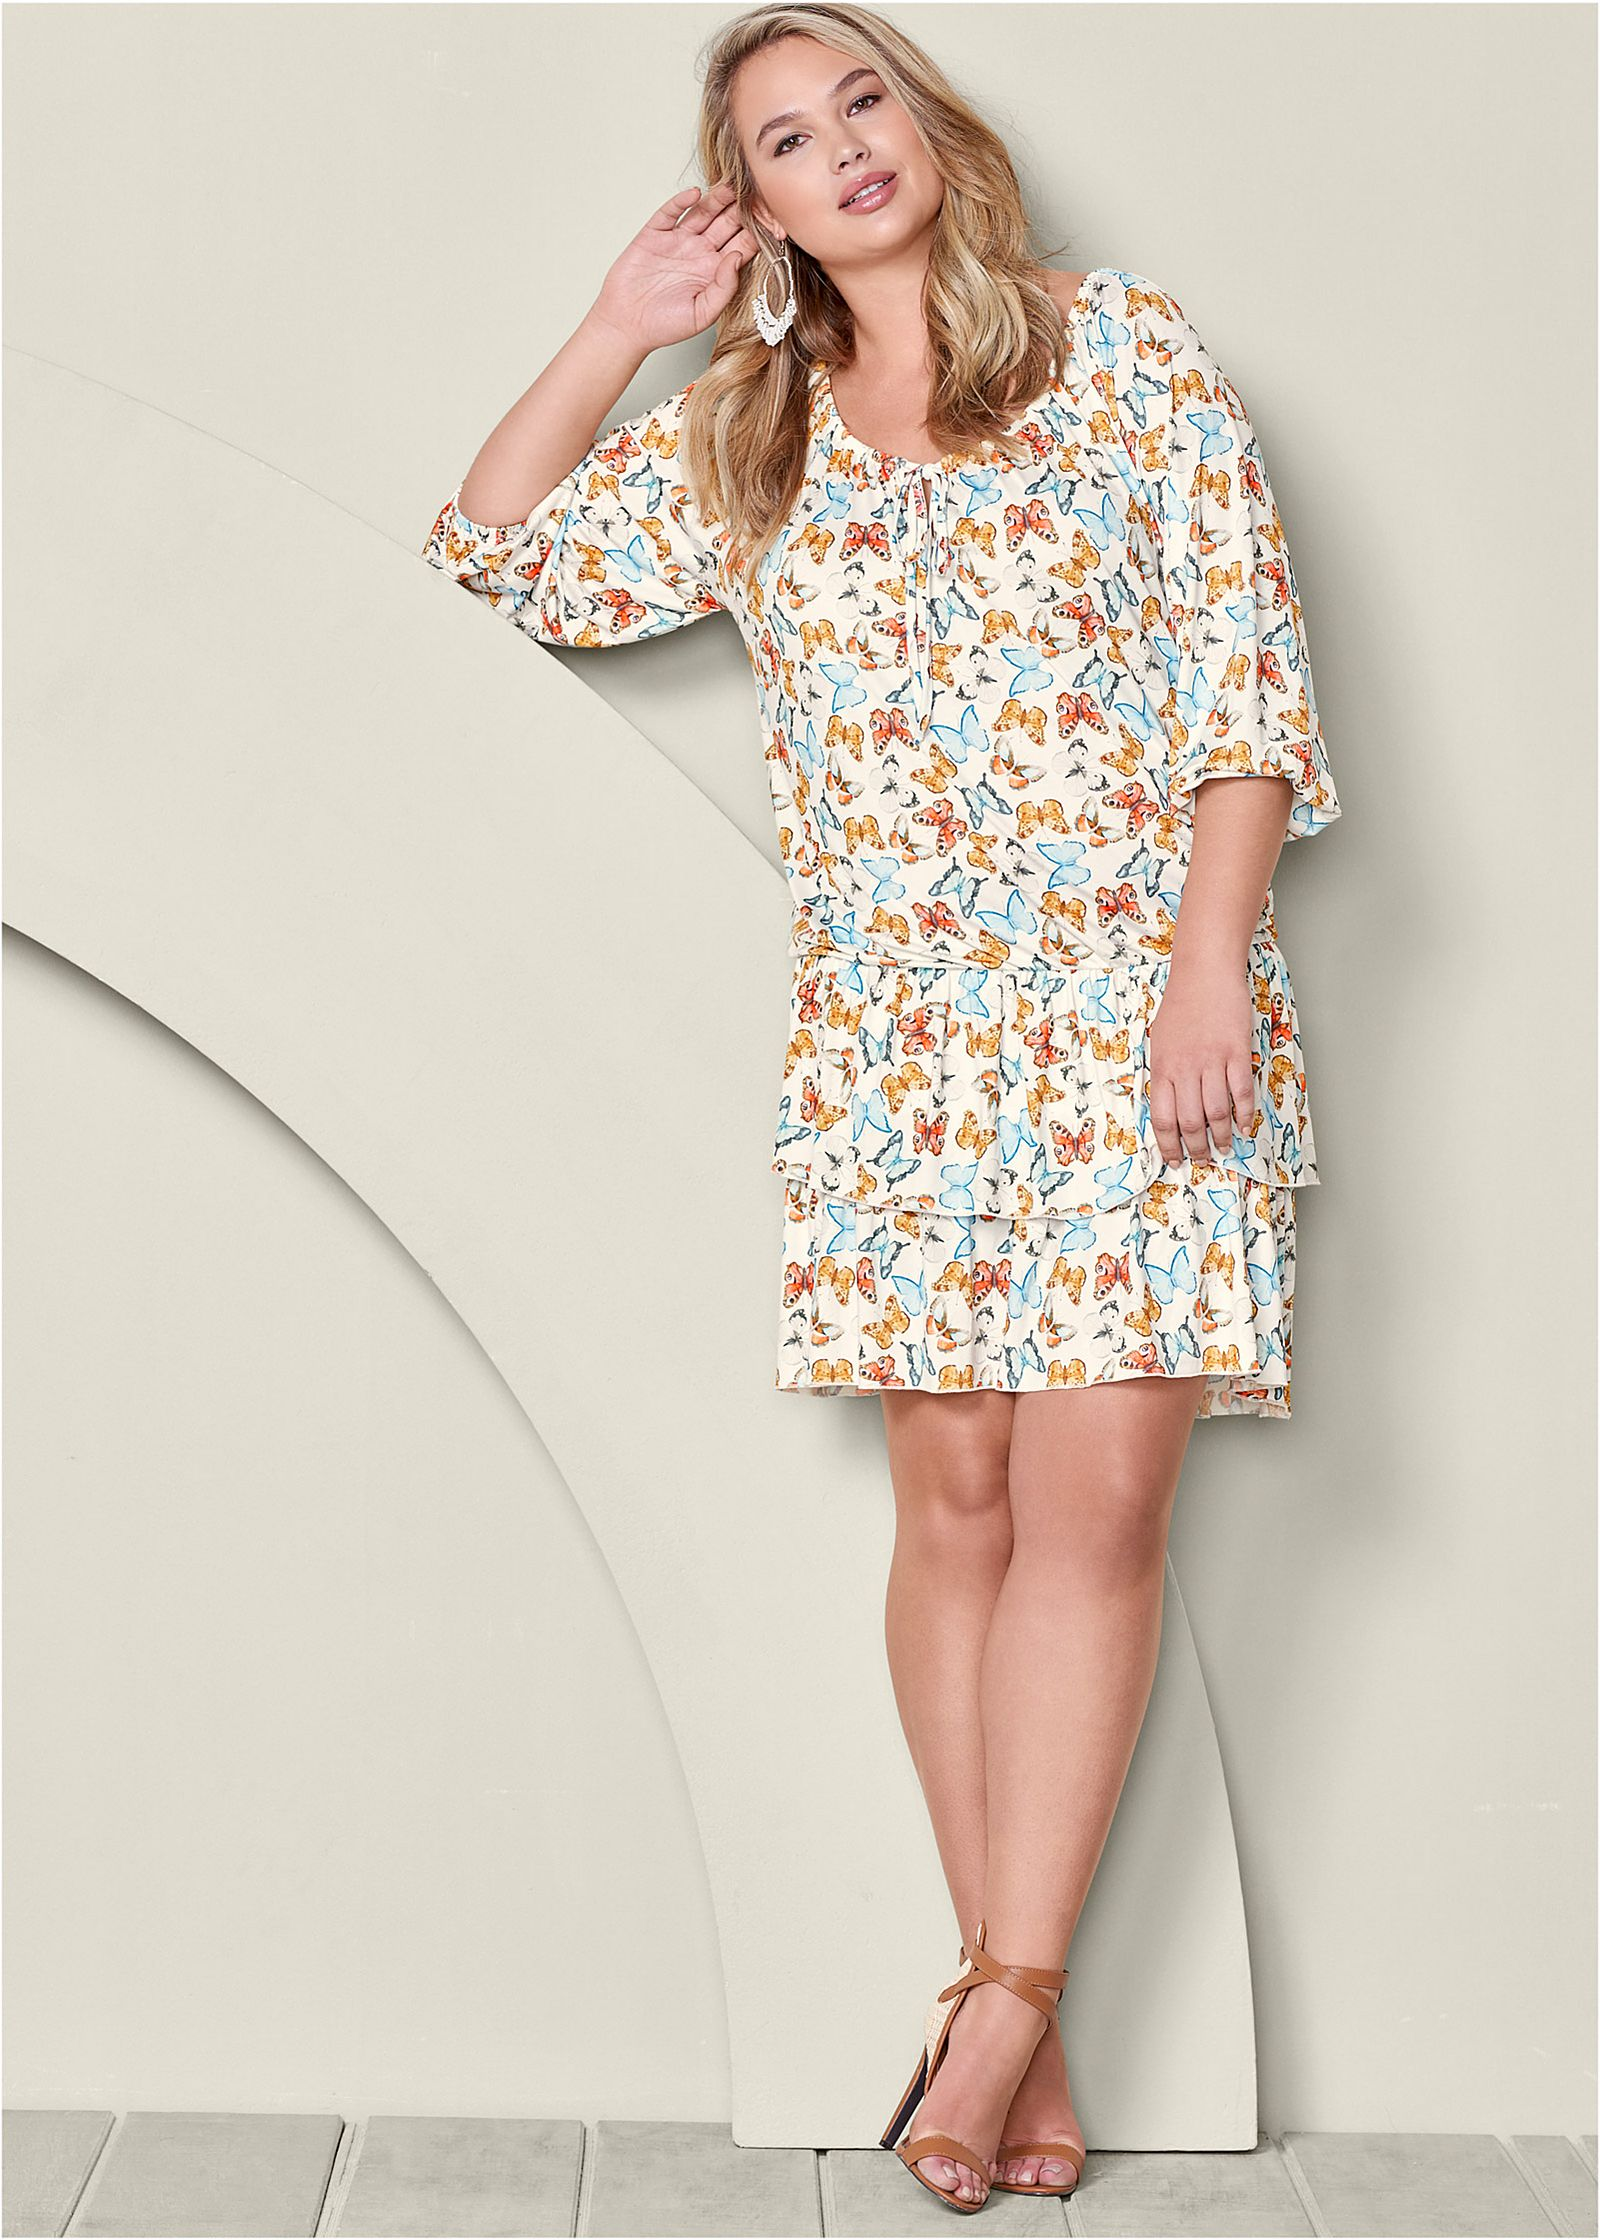 PLUS SIZE CASUAL DRESSES for big bust size